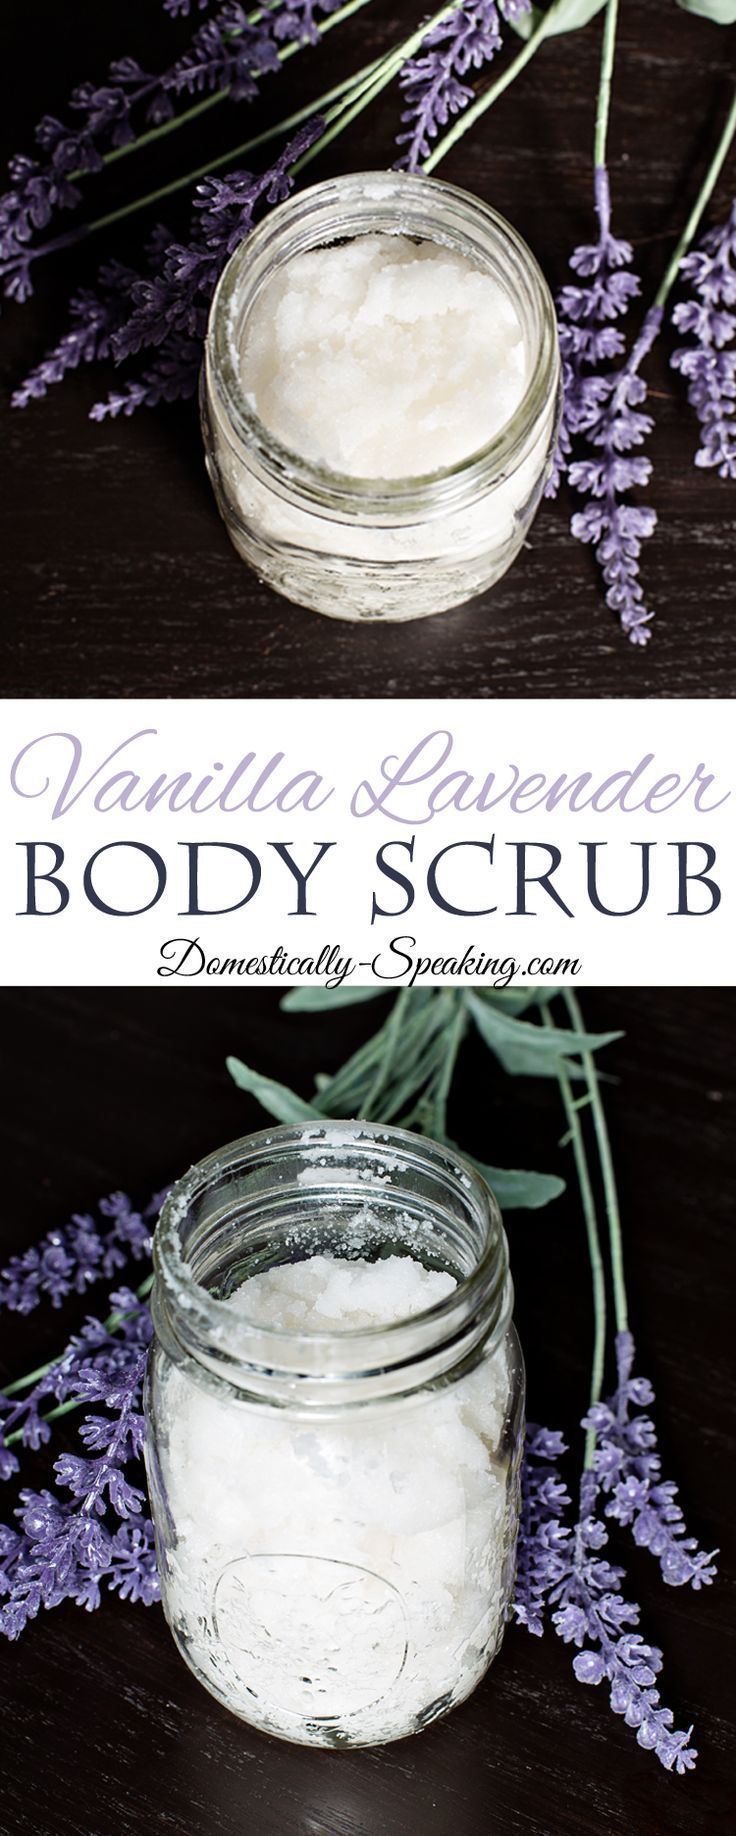 Vanilla Lavender Body Scrub a Homemade Body Scrub Recipe - great to get rid of your dry skin - a wonderful scent that is perfect to calm you before bedtime.